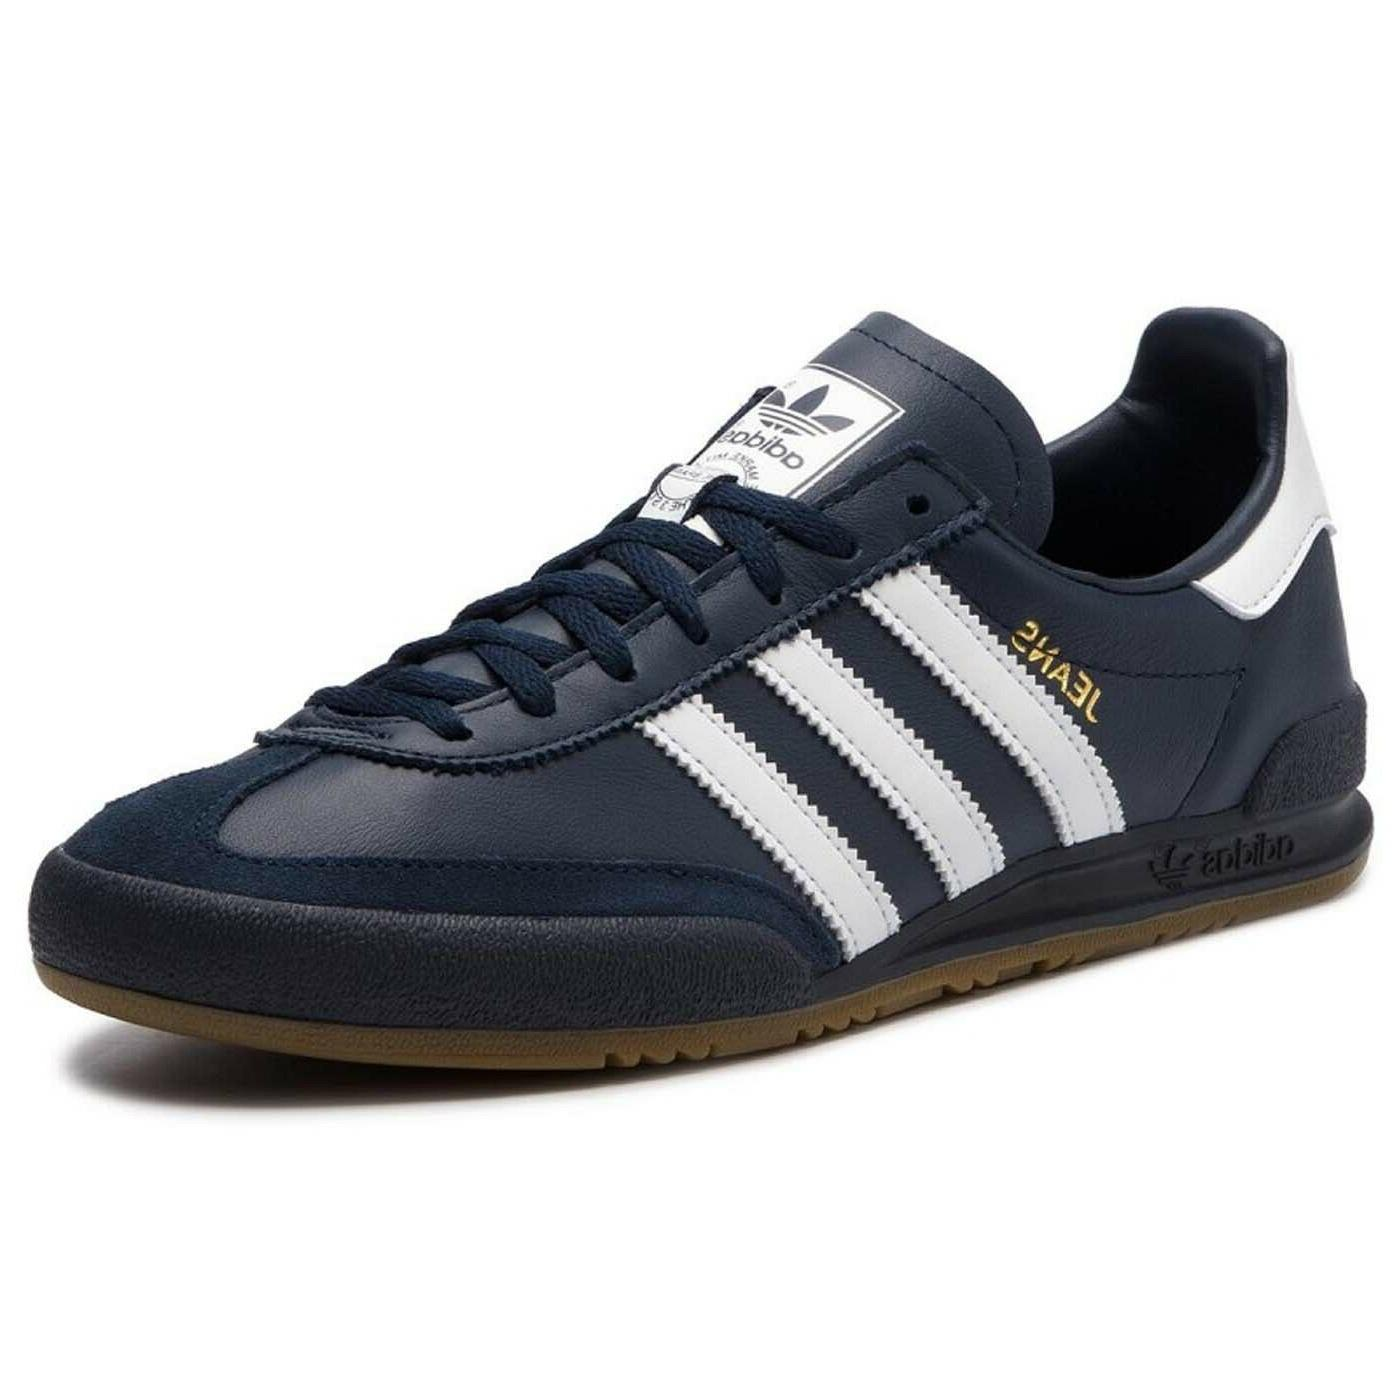 Adidas Jeans Collegiate Navy EU-38 Leather Sneakers Blue US-